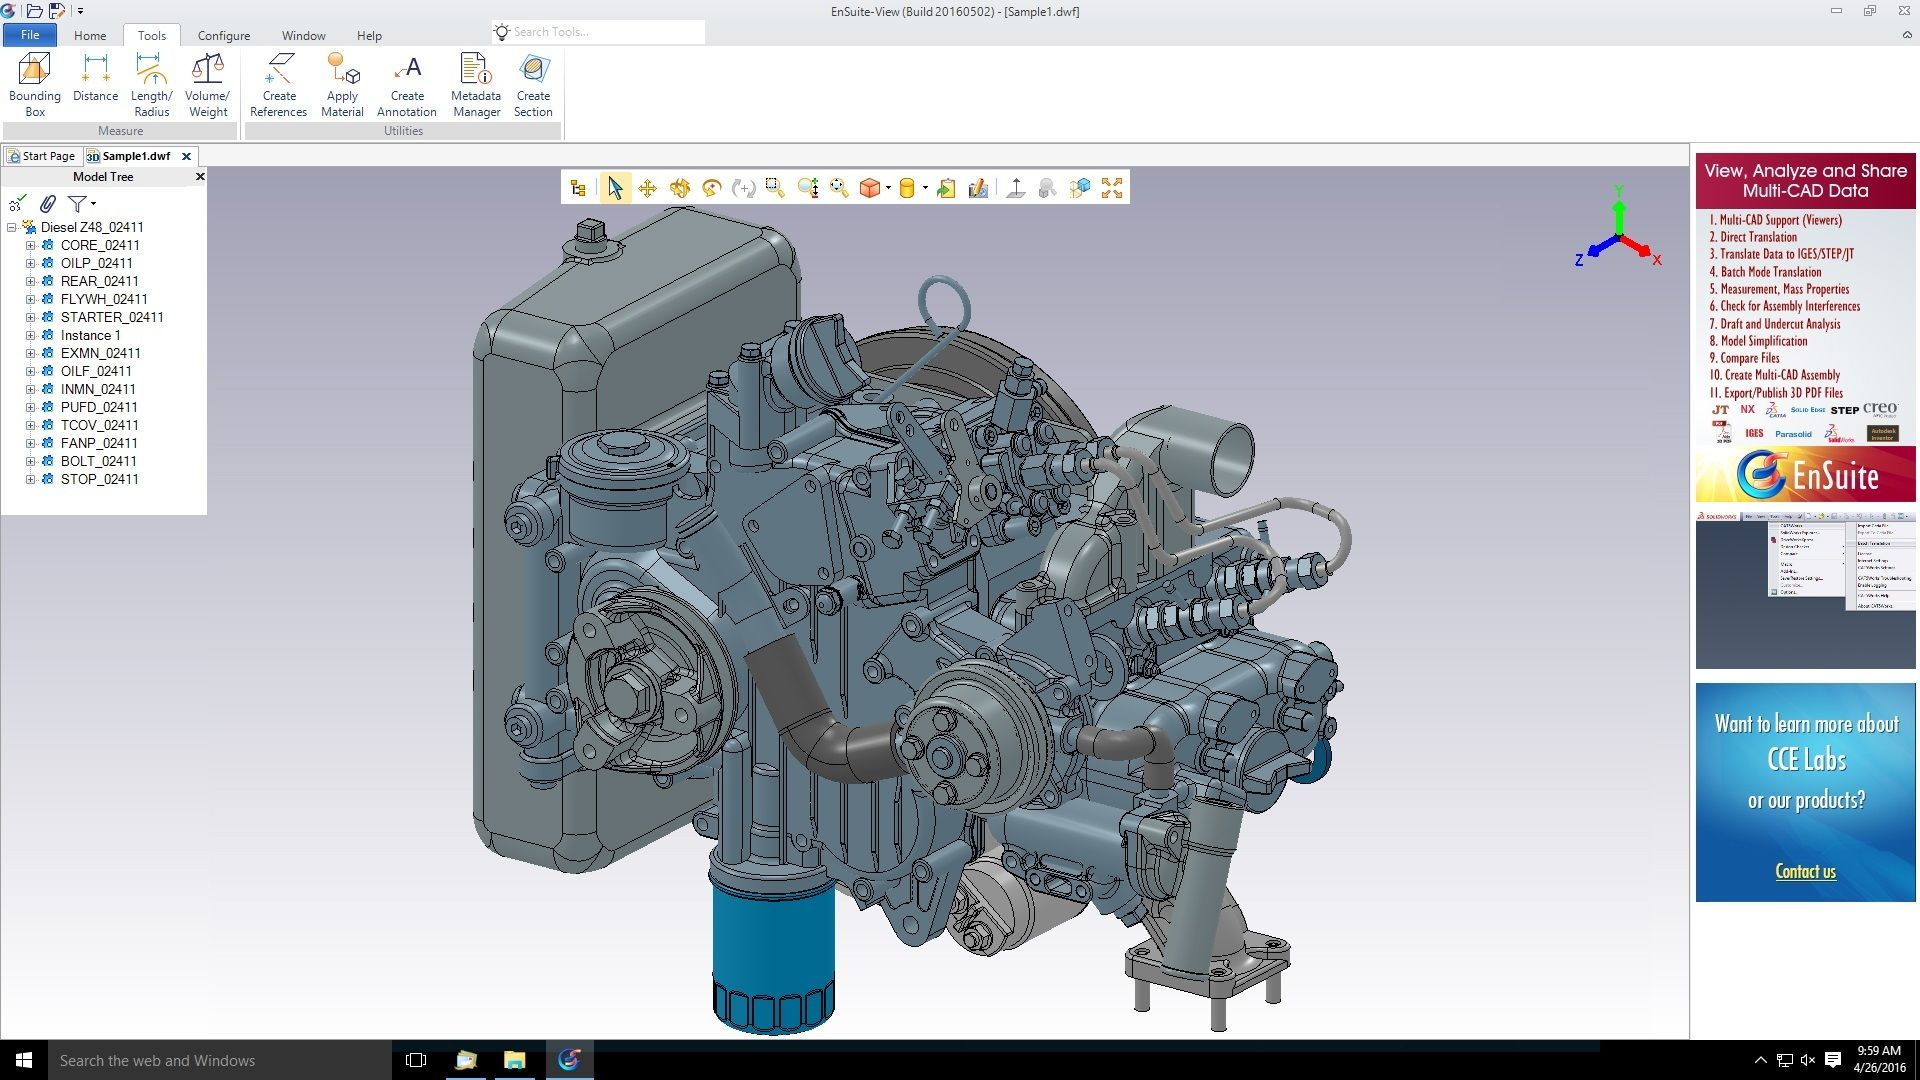 Do you think identifying multi-#CAD viewer is a rocket